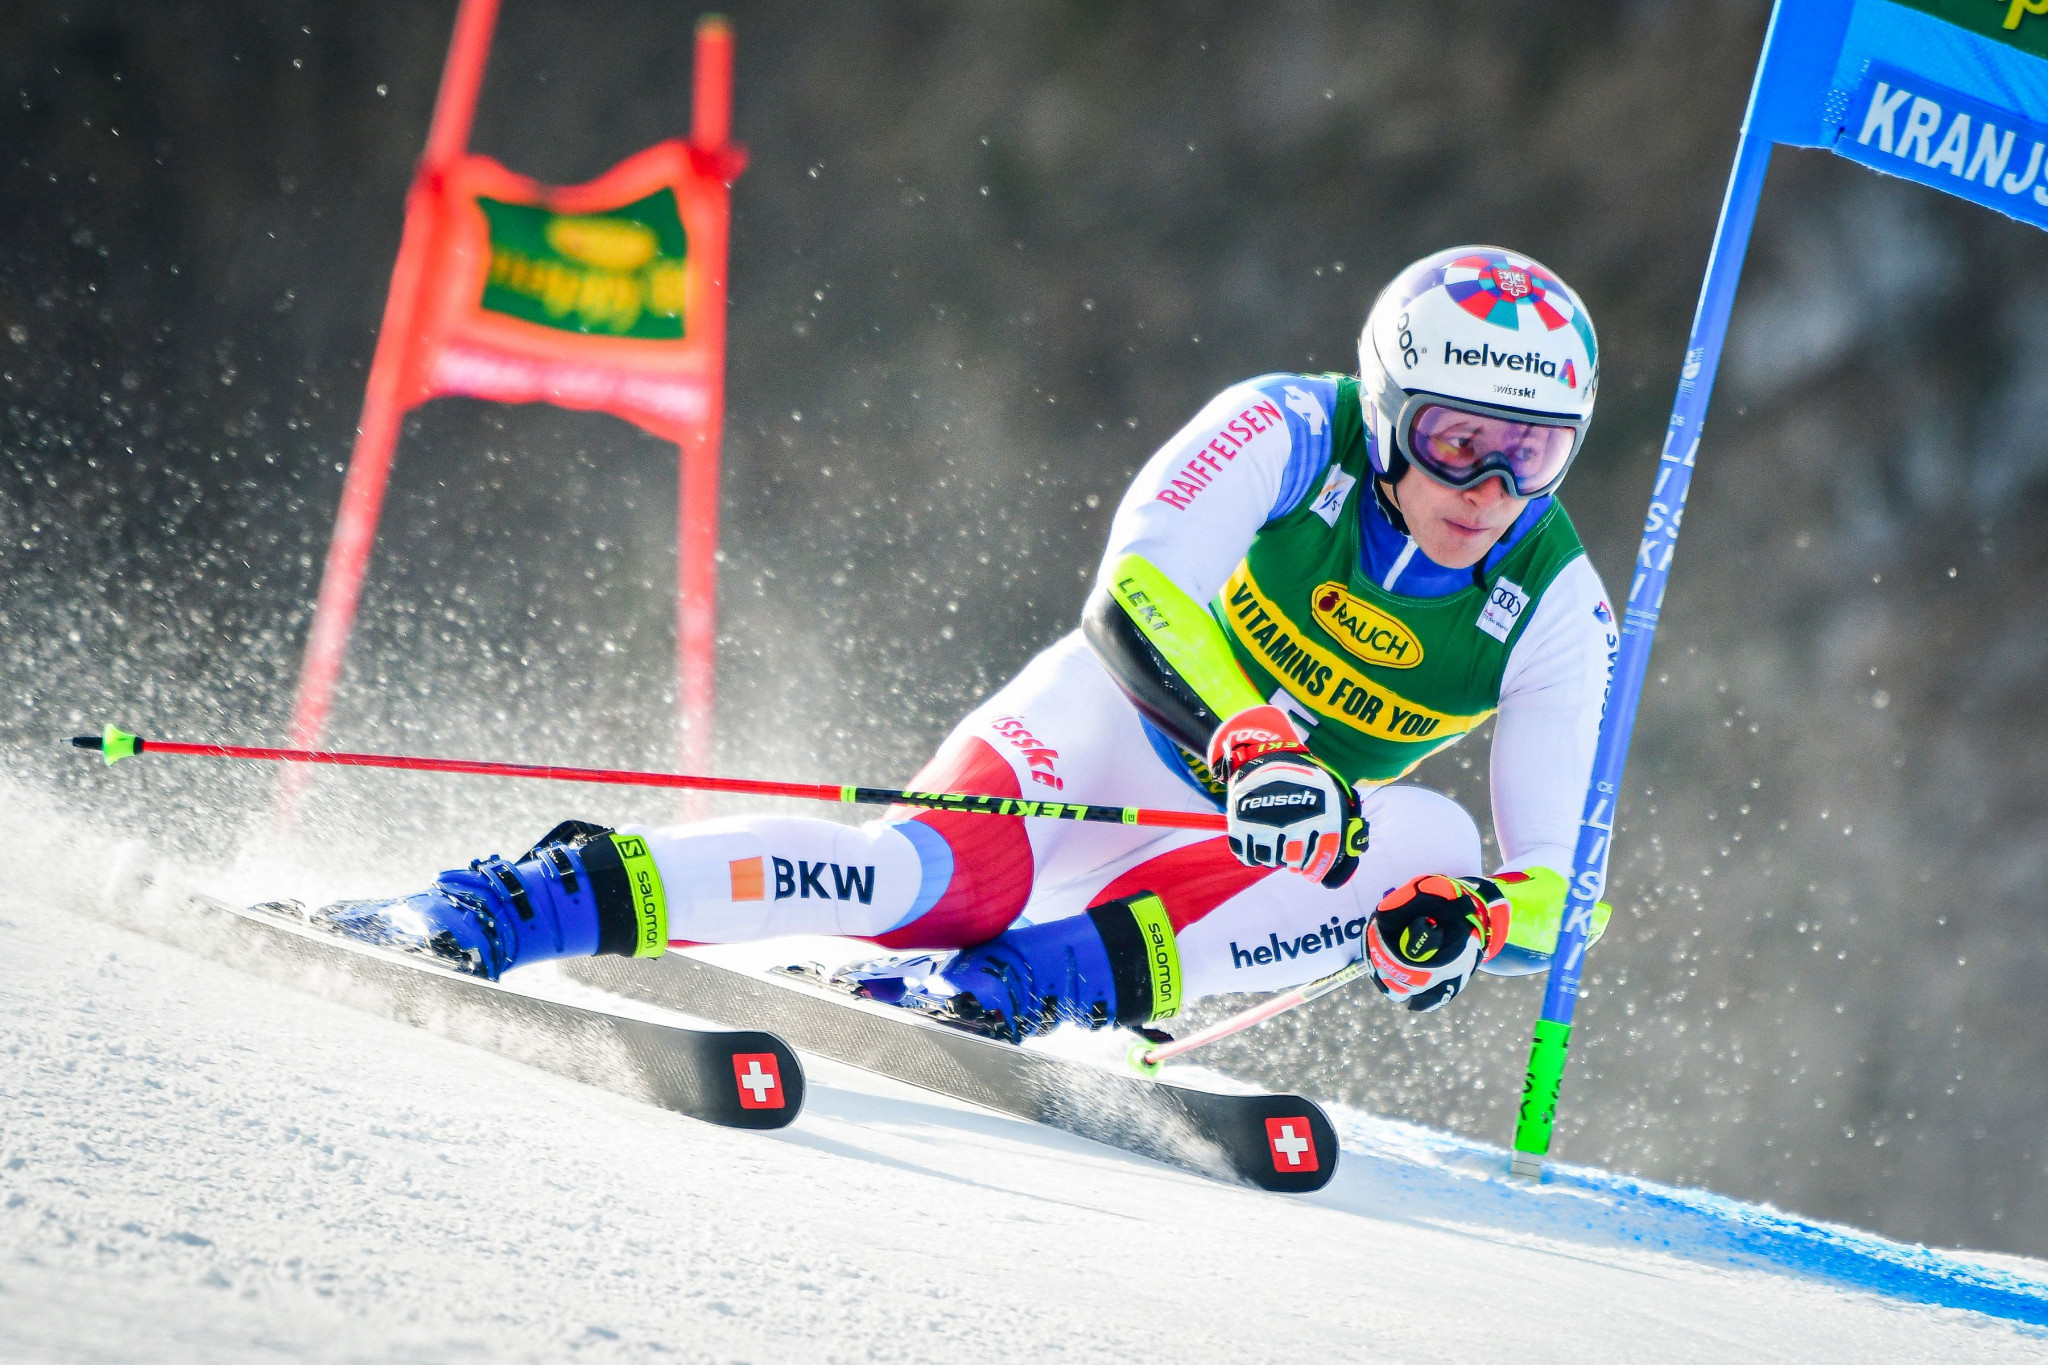 Marco Odermatt took the lead of the giant slalom standings in the FIS Alpine Ski World Cup ©Getty Images